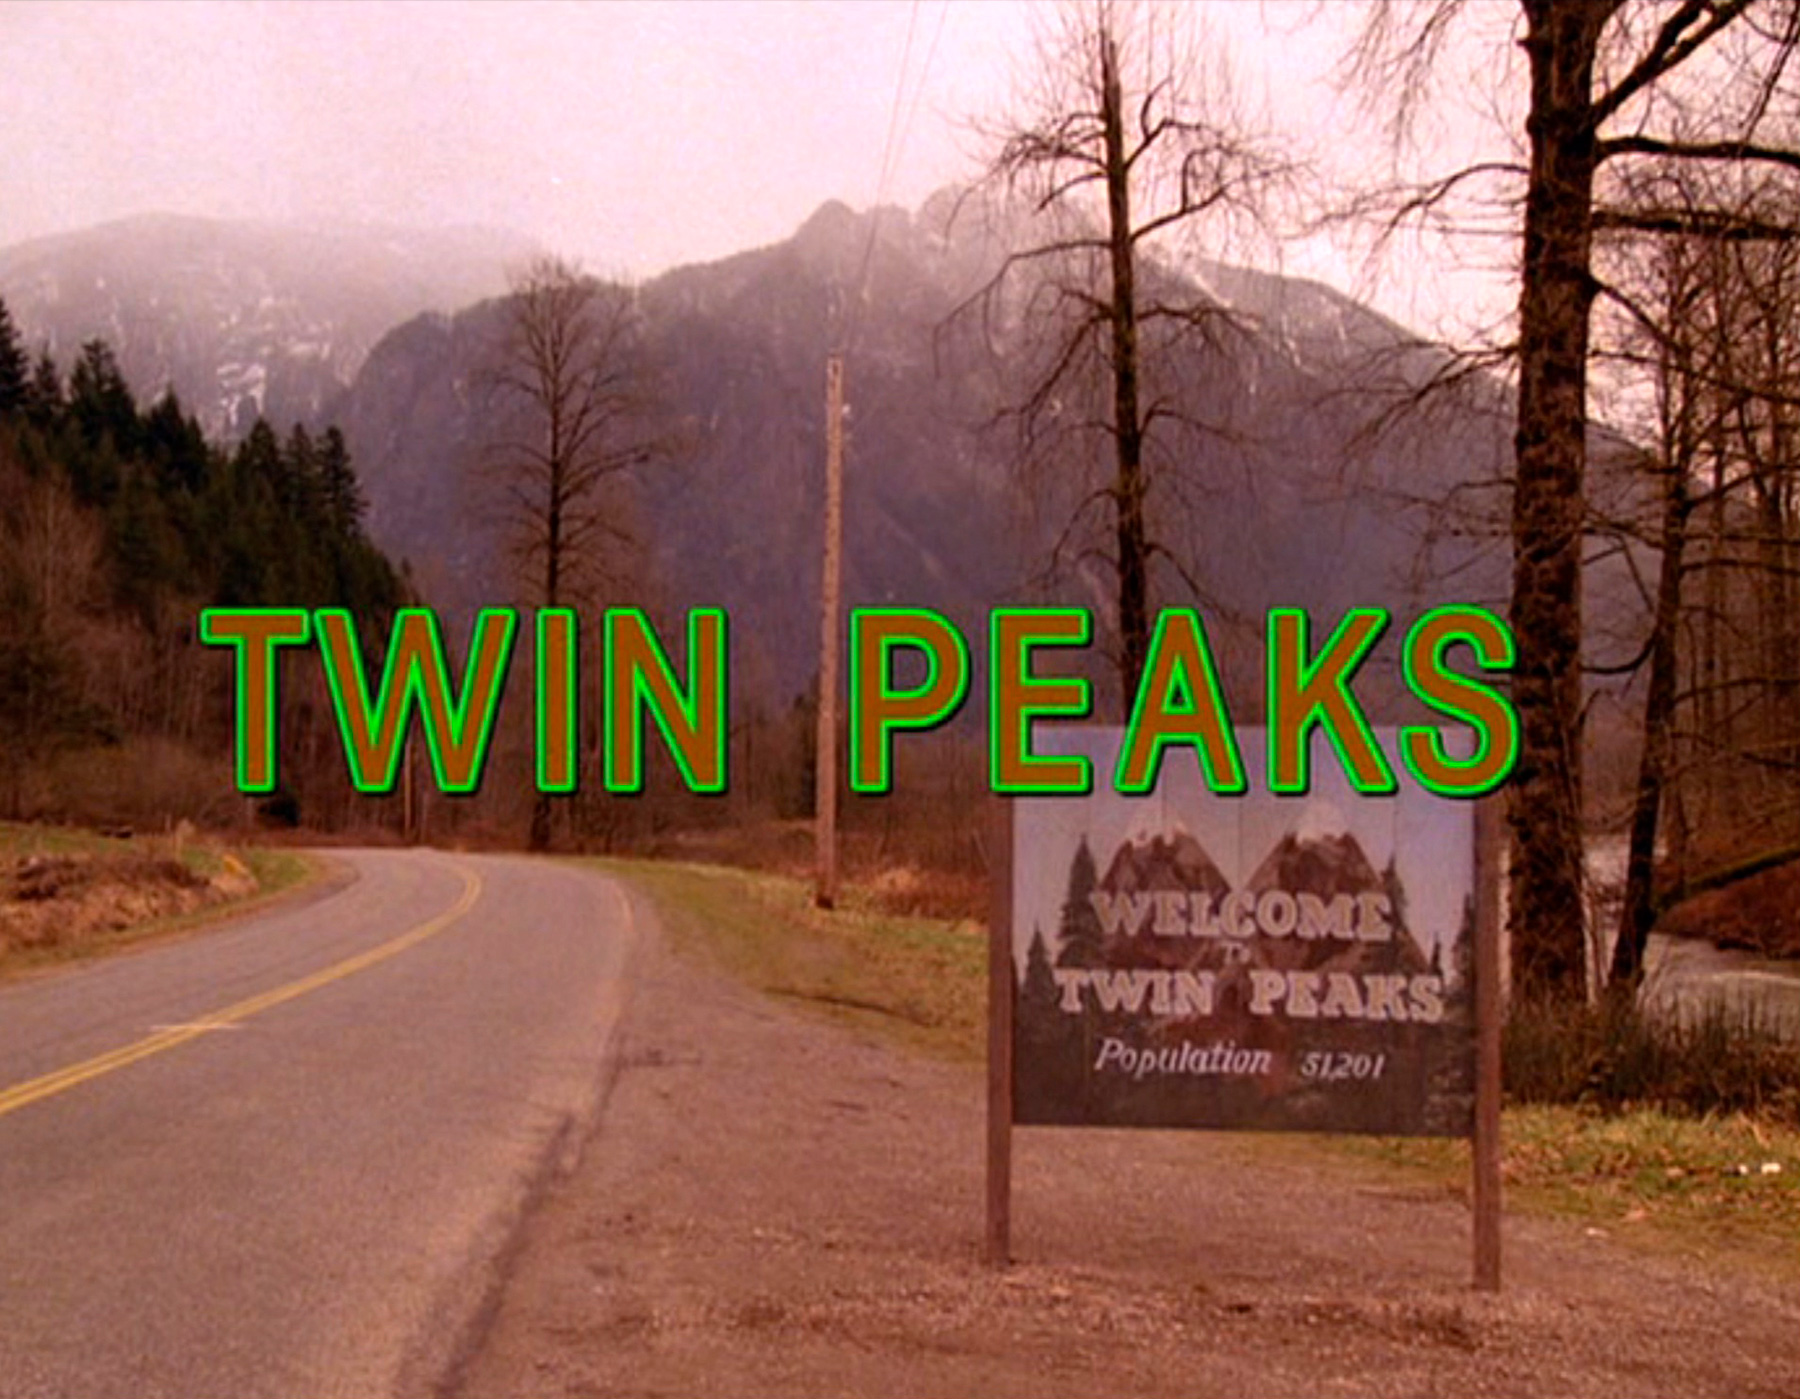 Everything You Need to Know About 'Twin Peaks' Before Revival